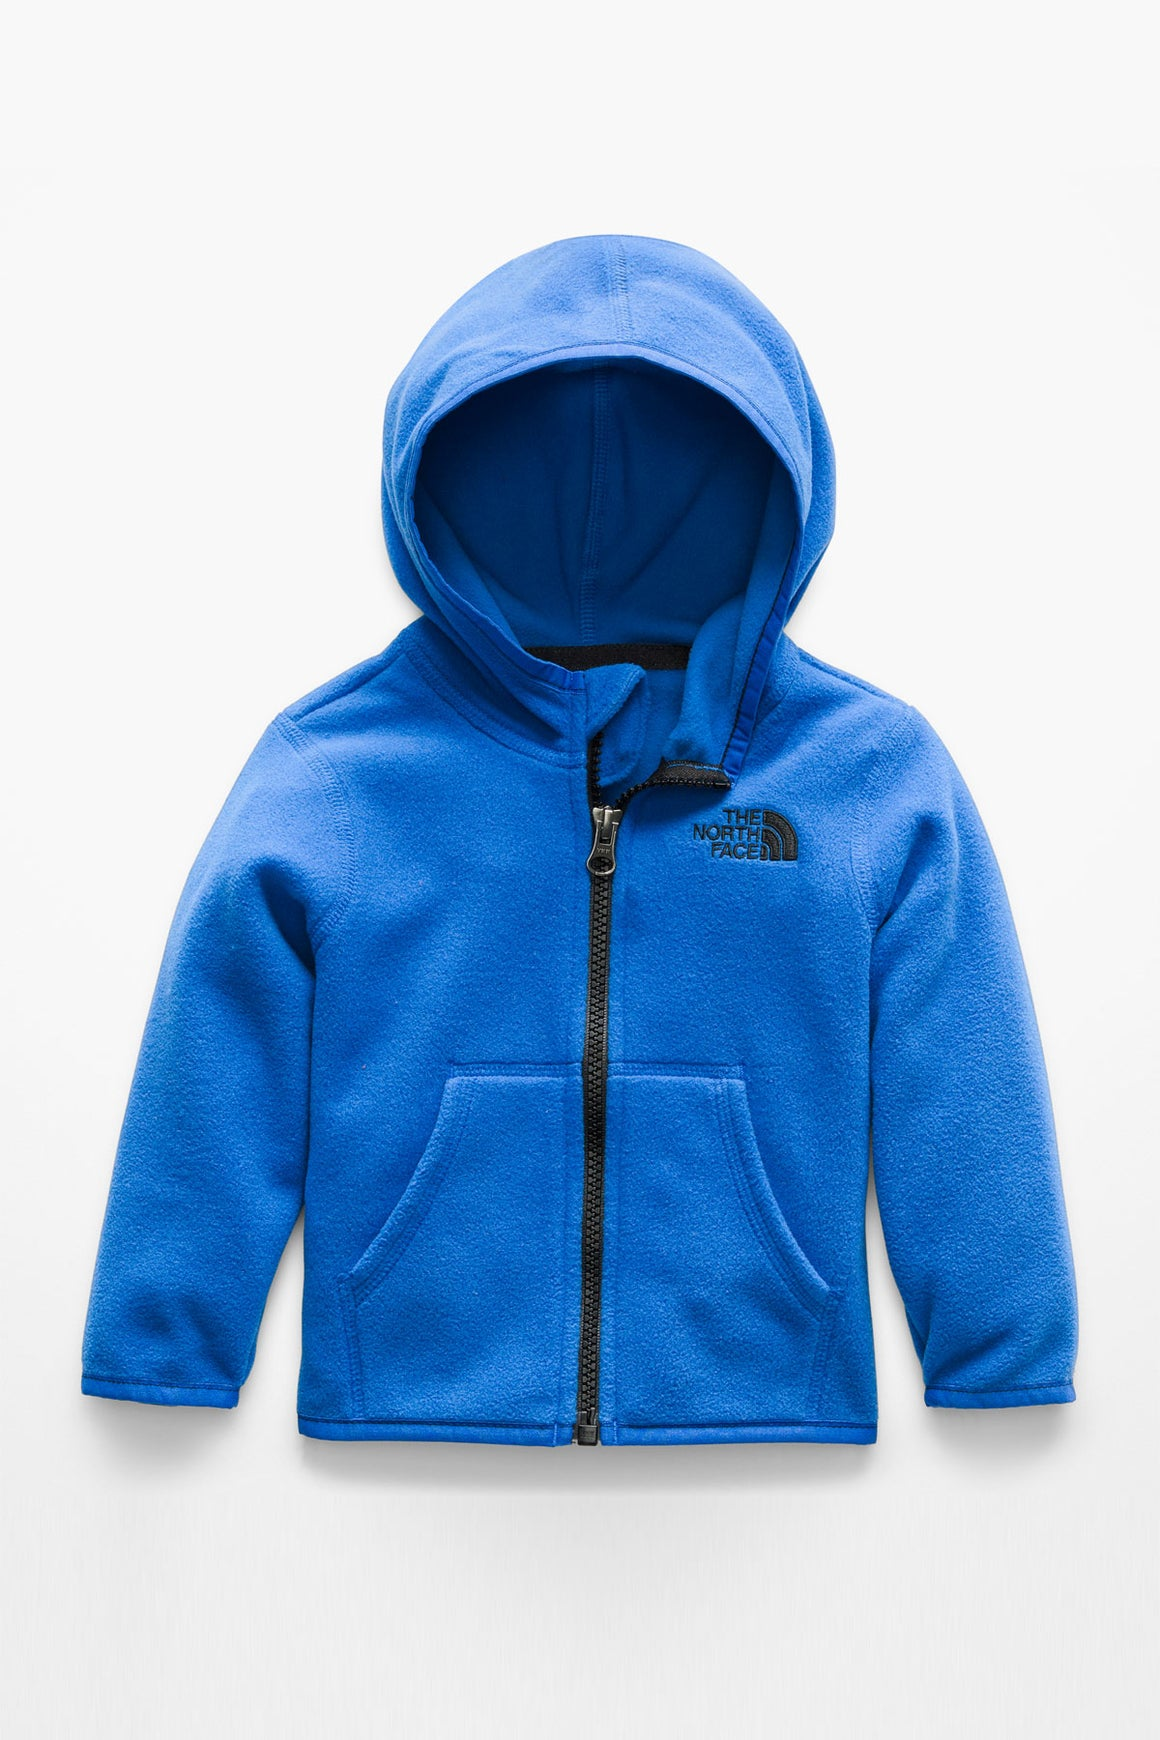 The North Face Infant Glacier Full Zip Hoodie - Turkish Sea